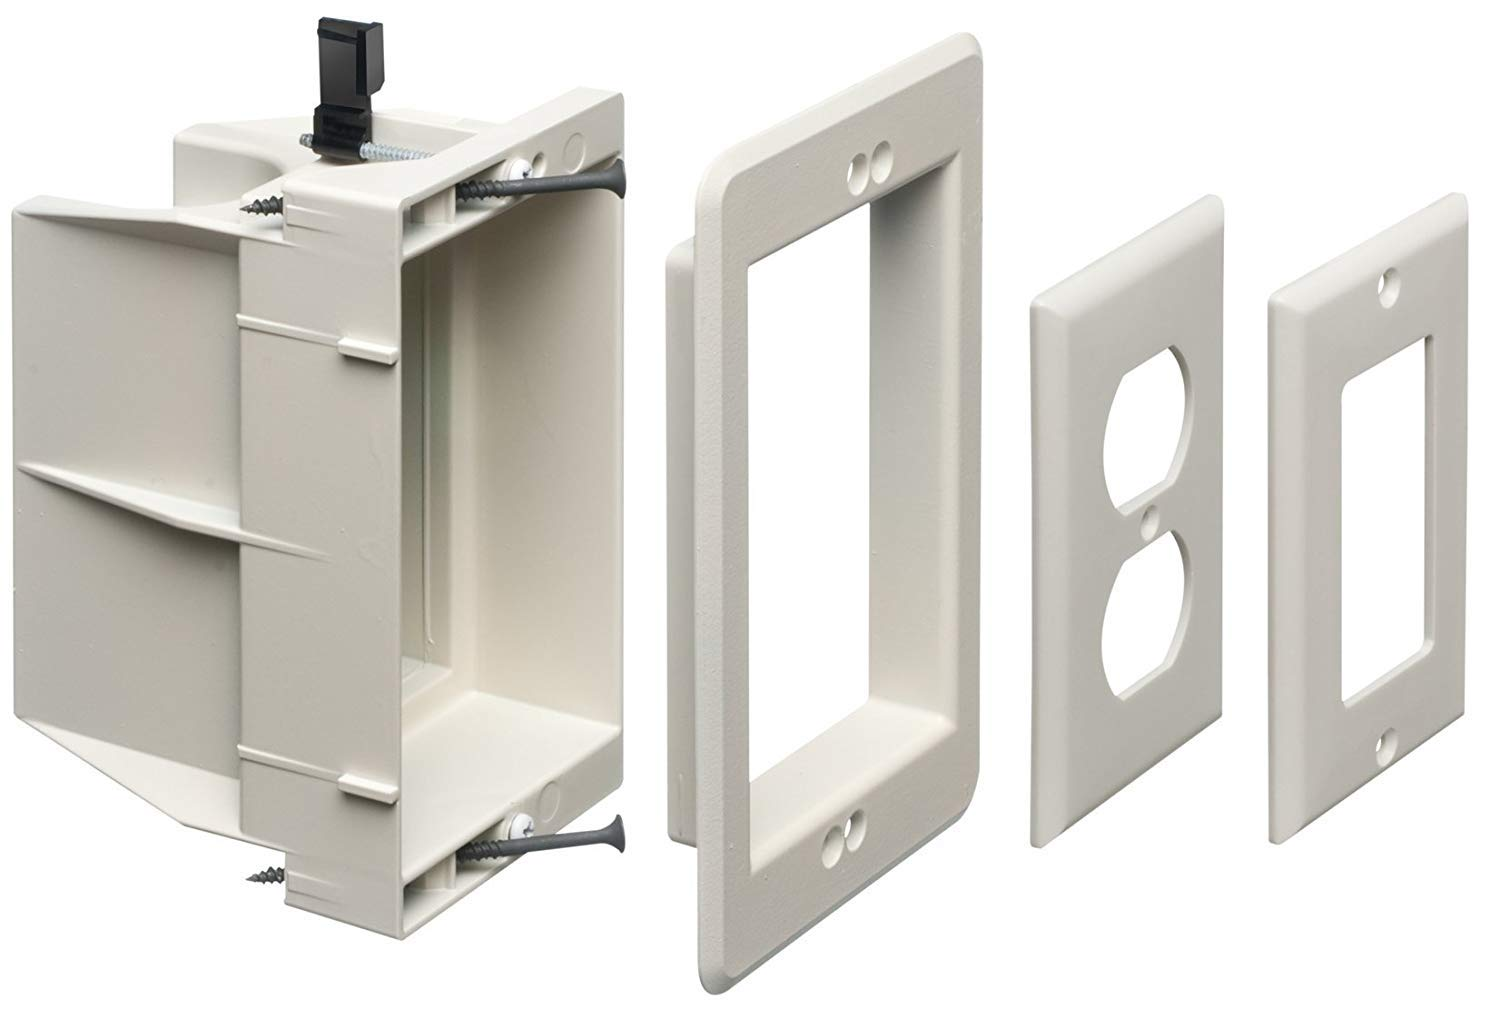 Arlington DVFR1W-1 Recessed Electrical/Outlet Mounting Box, Single Gang by Arlington Industries